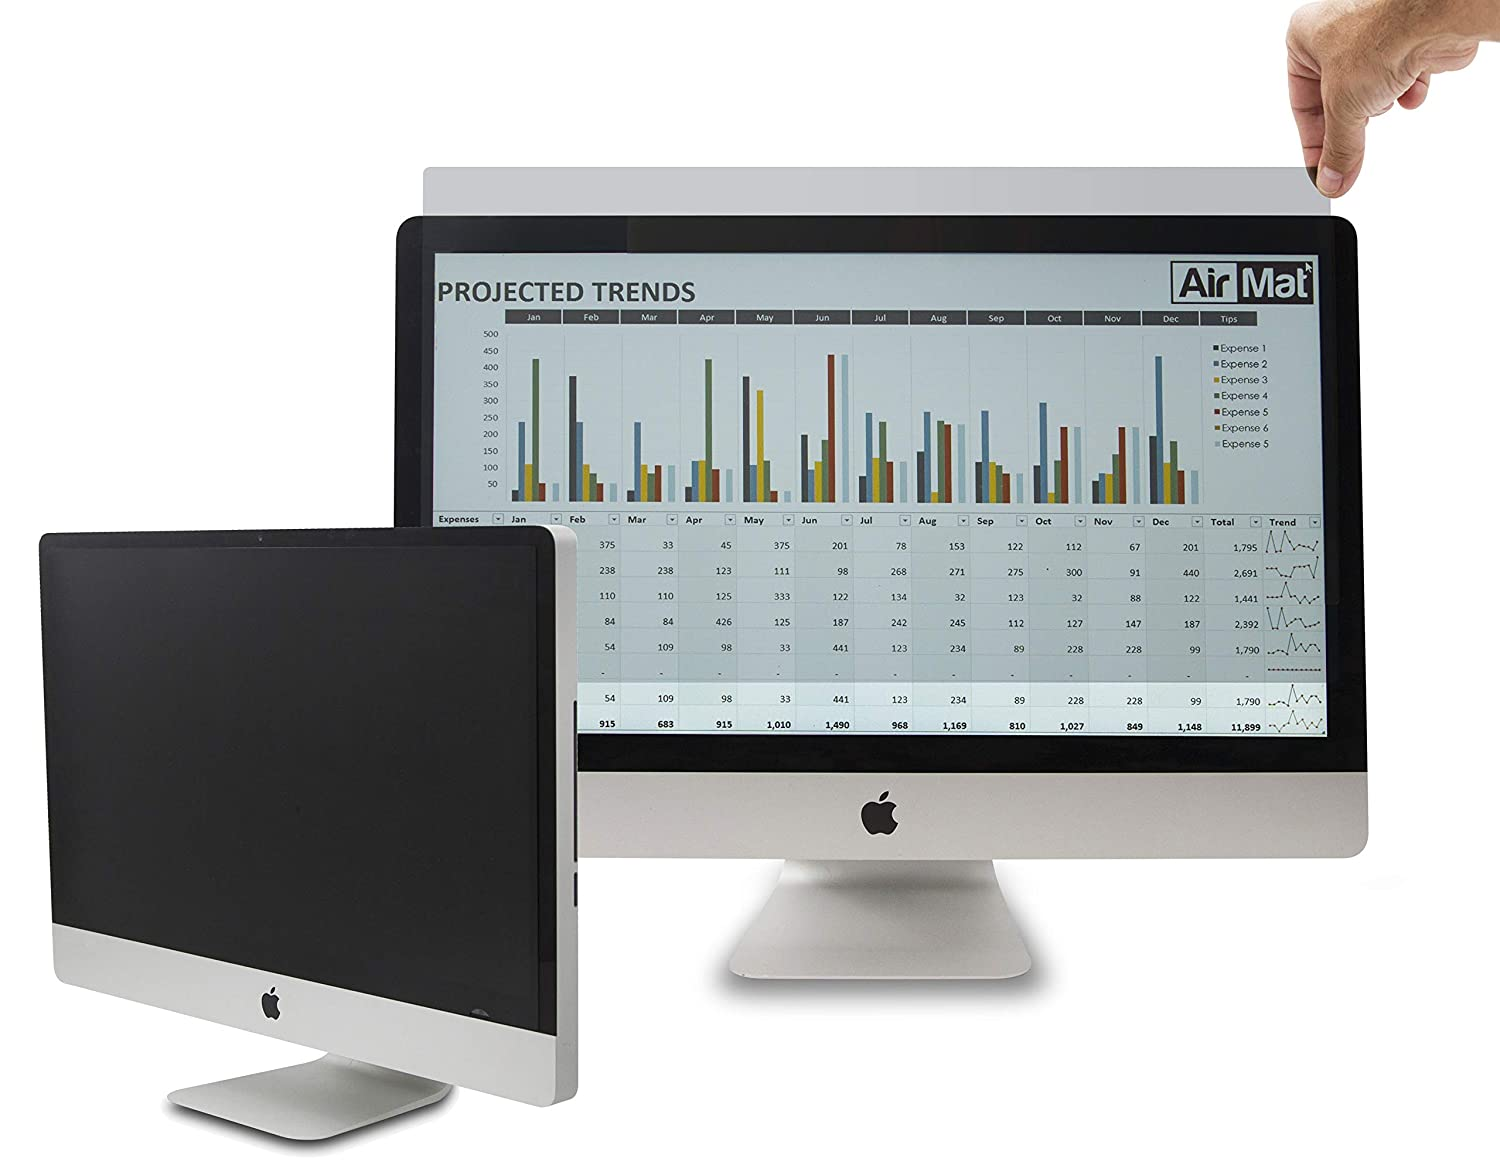 Computer Privacy Screen Filter for 21.5 inch Widescreen Display Monitors by AirMat. Anti Glare Protector Film for Data Confidentiality. (21.5' Widescreen 16:9, Black) Air Mat 4328377333